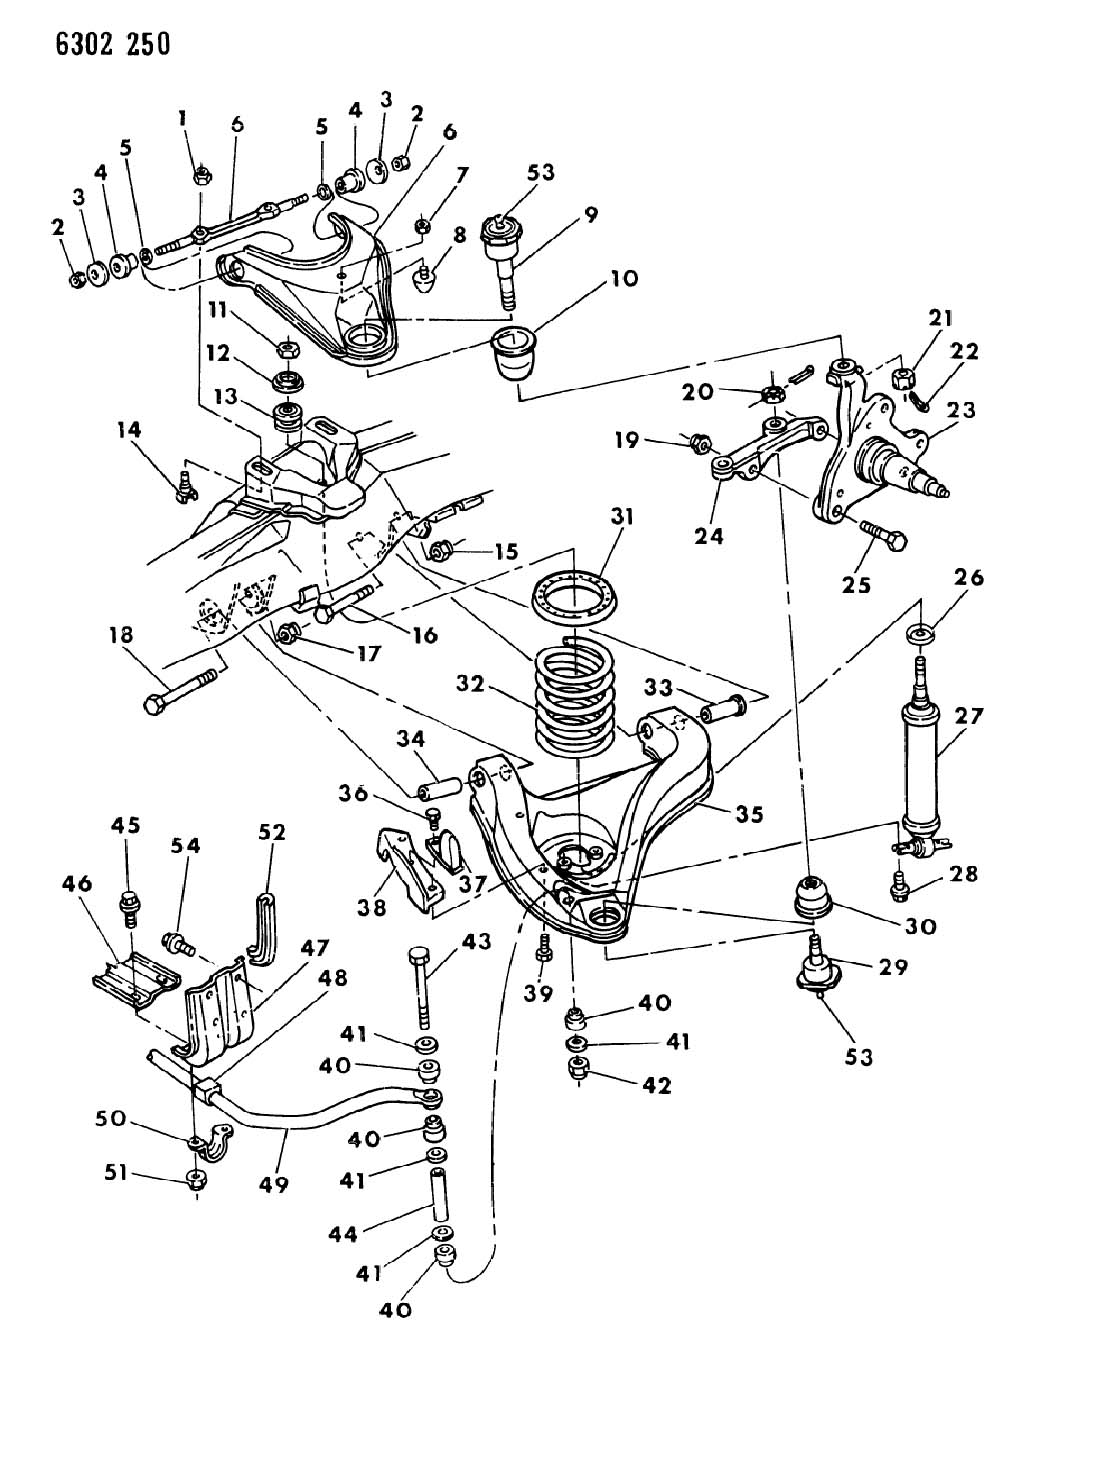 1999 Chrysler Lhs Suspension Diagrams